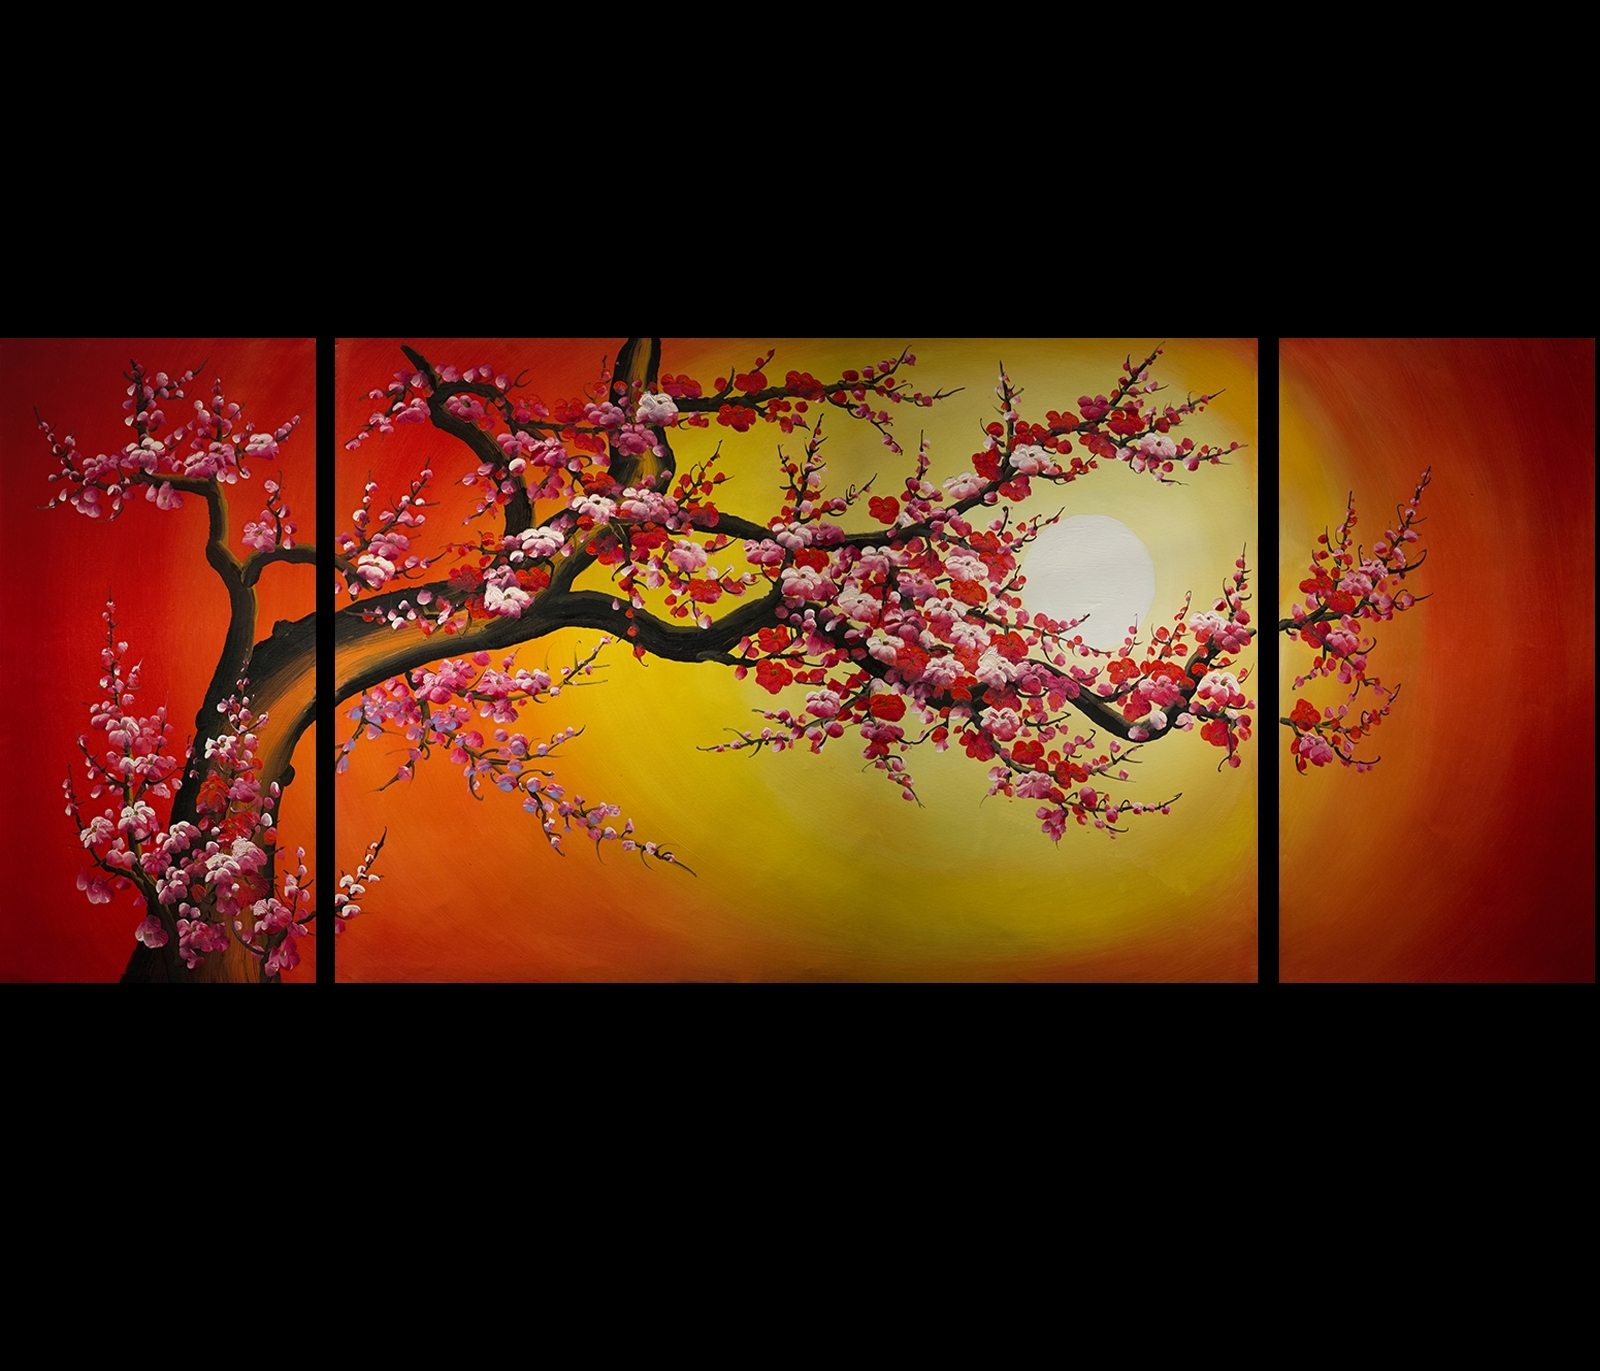 Chinese Cherry Blossom Feng Shui Oil Painting Abstract Art Modern Intended For 2018 Cherry Blossom Oil Painting Modern Abstract Wall Art (View 7 of 20)